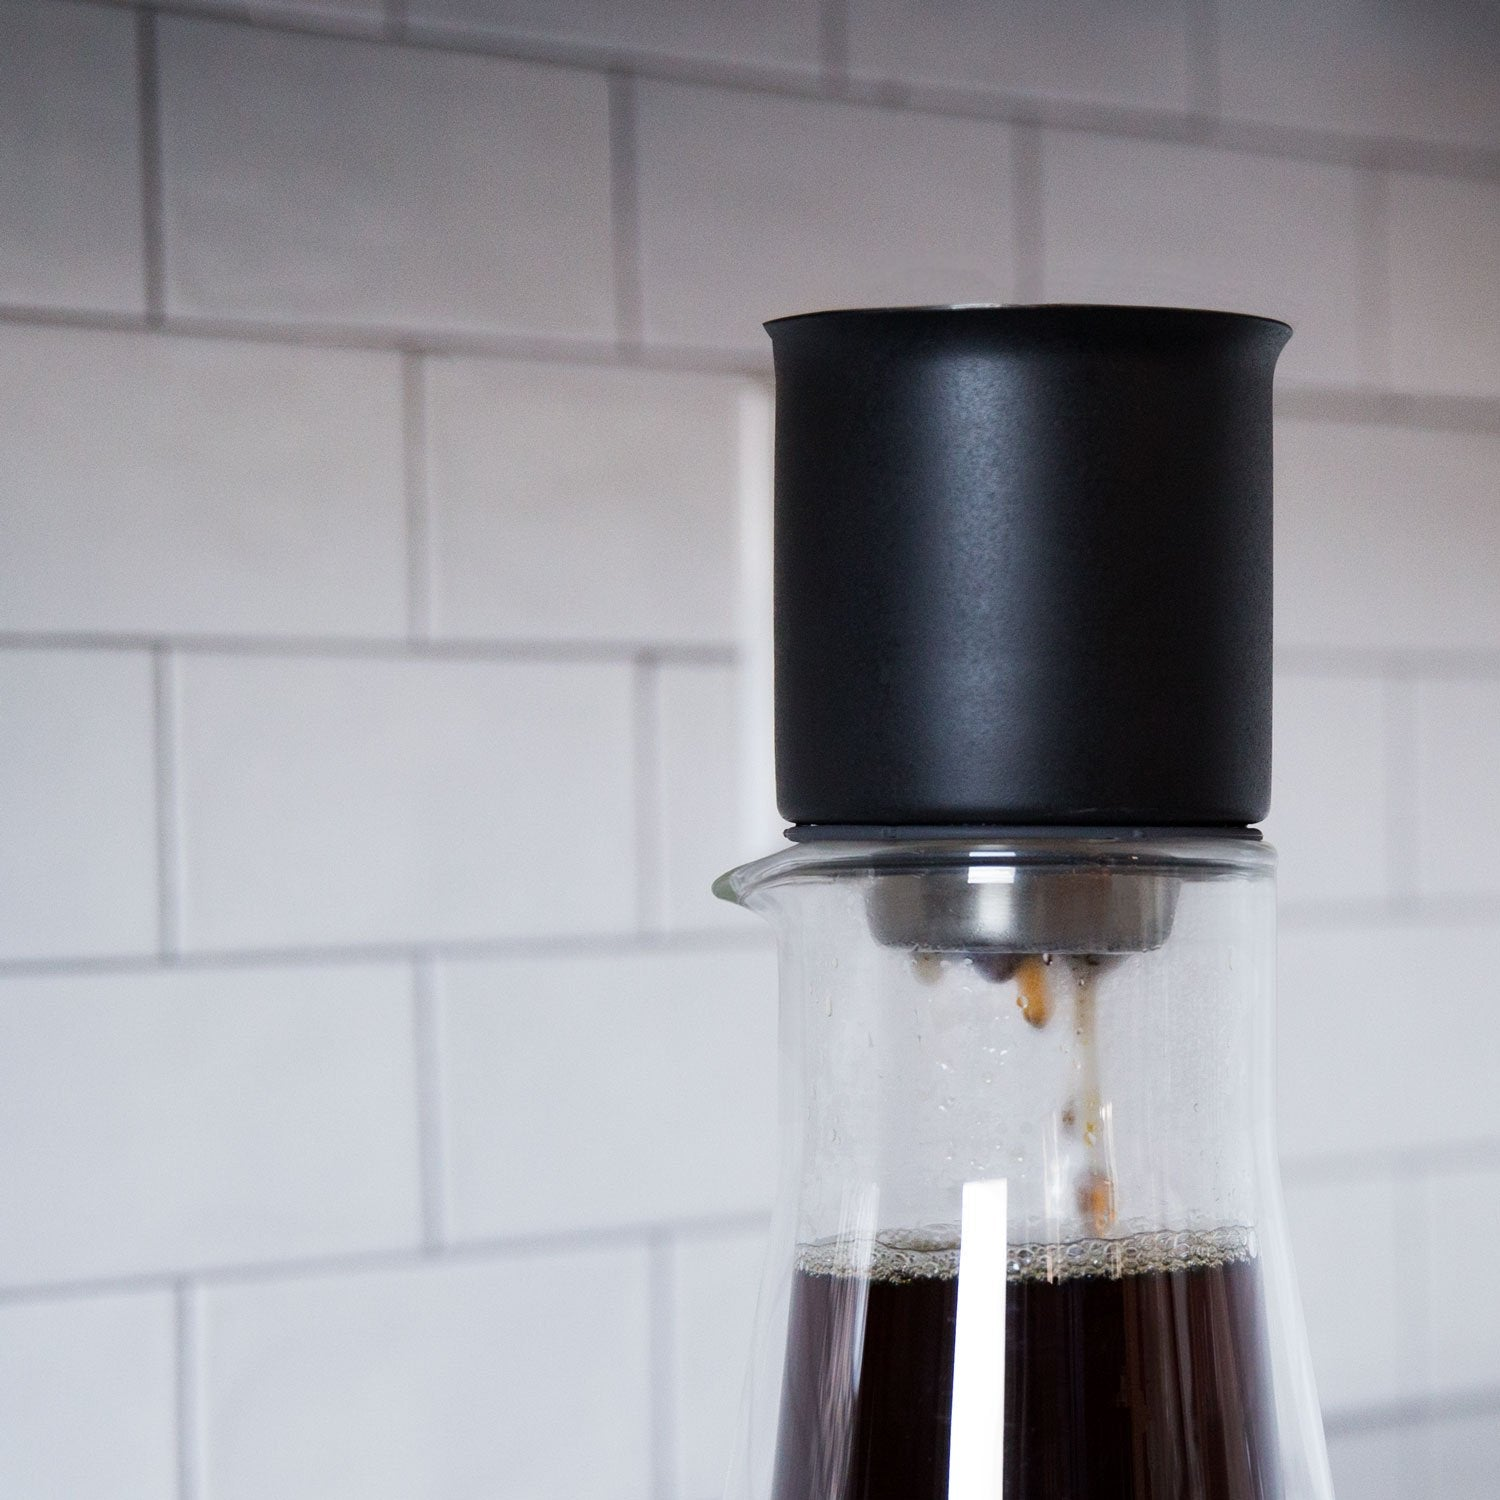 Stagg [XF] Pour-Over Brewing Set